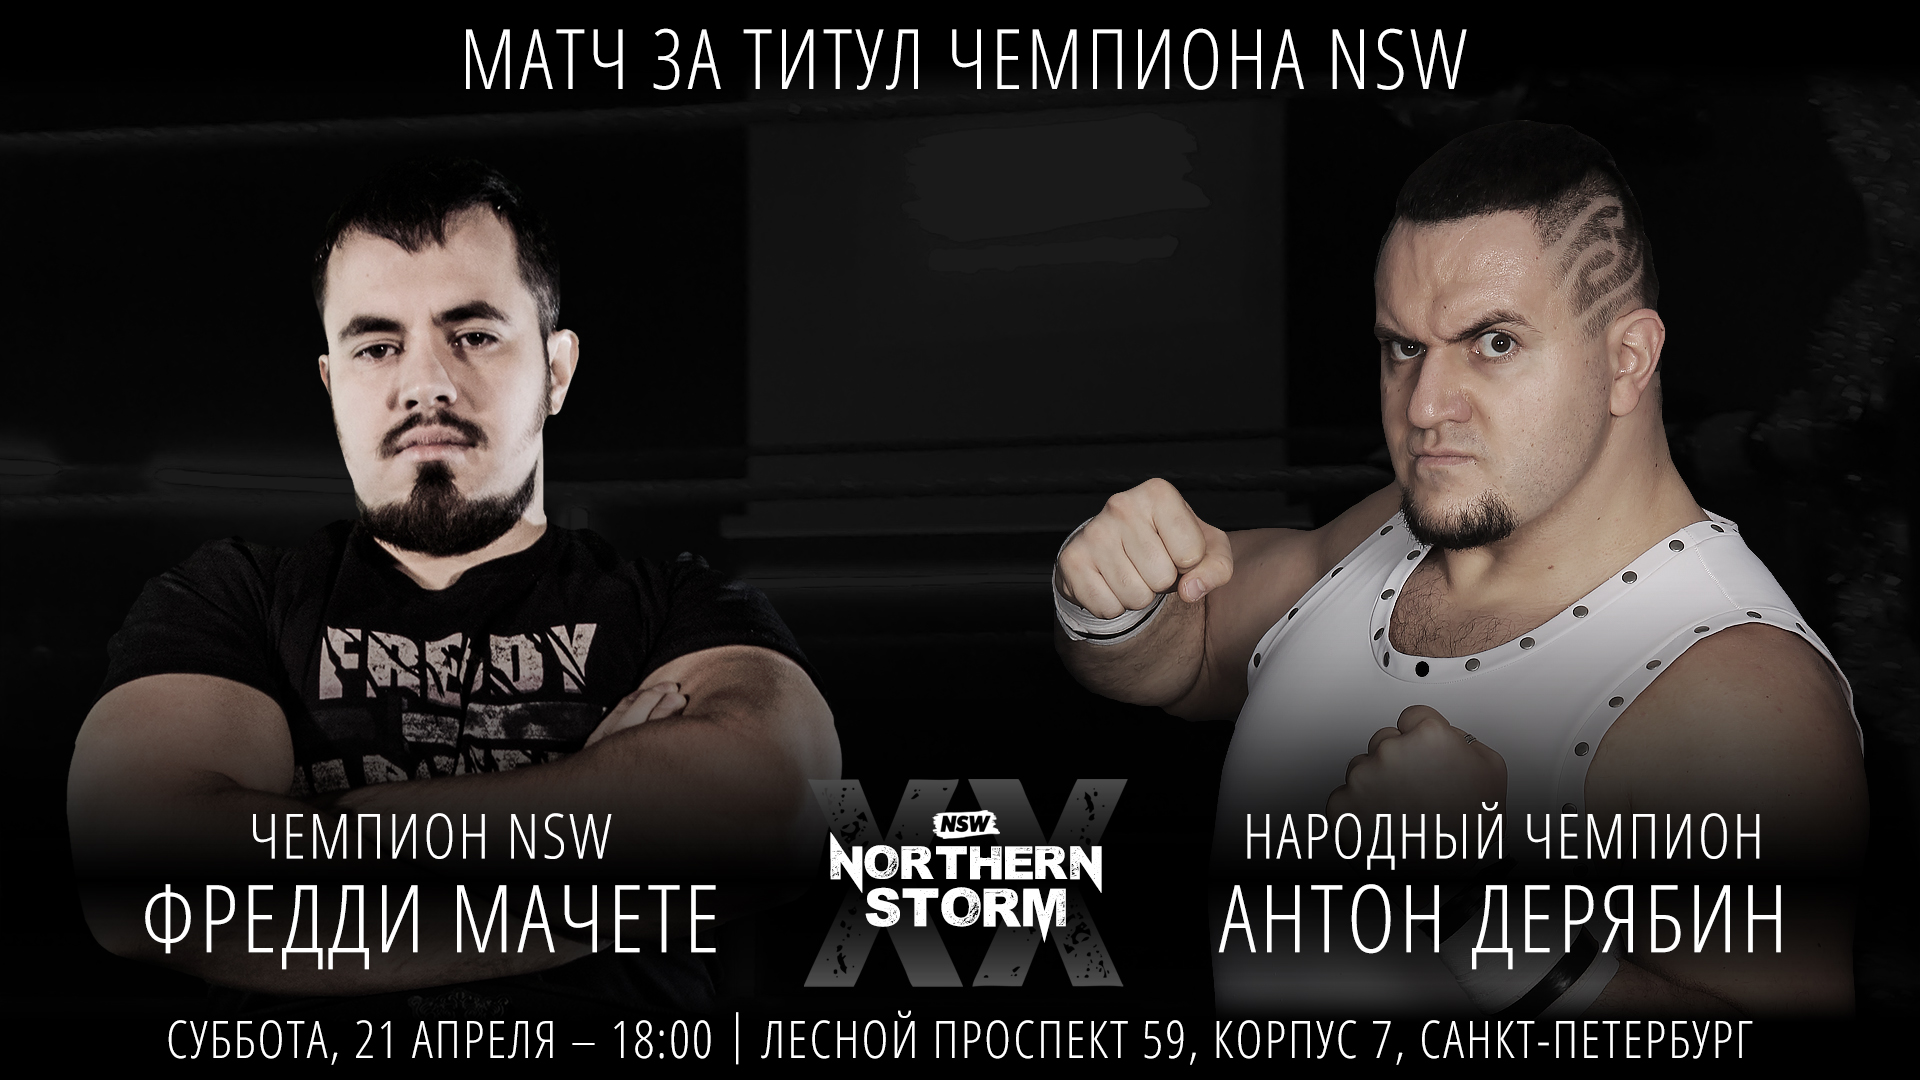 NSW Northern Storm XX: Фредди Мачете против Антона Дерябин